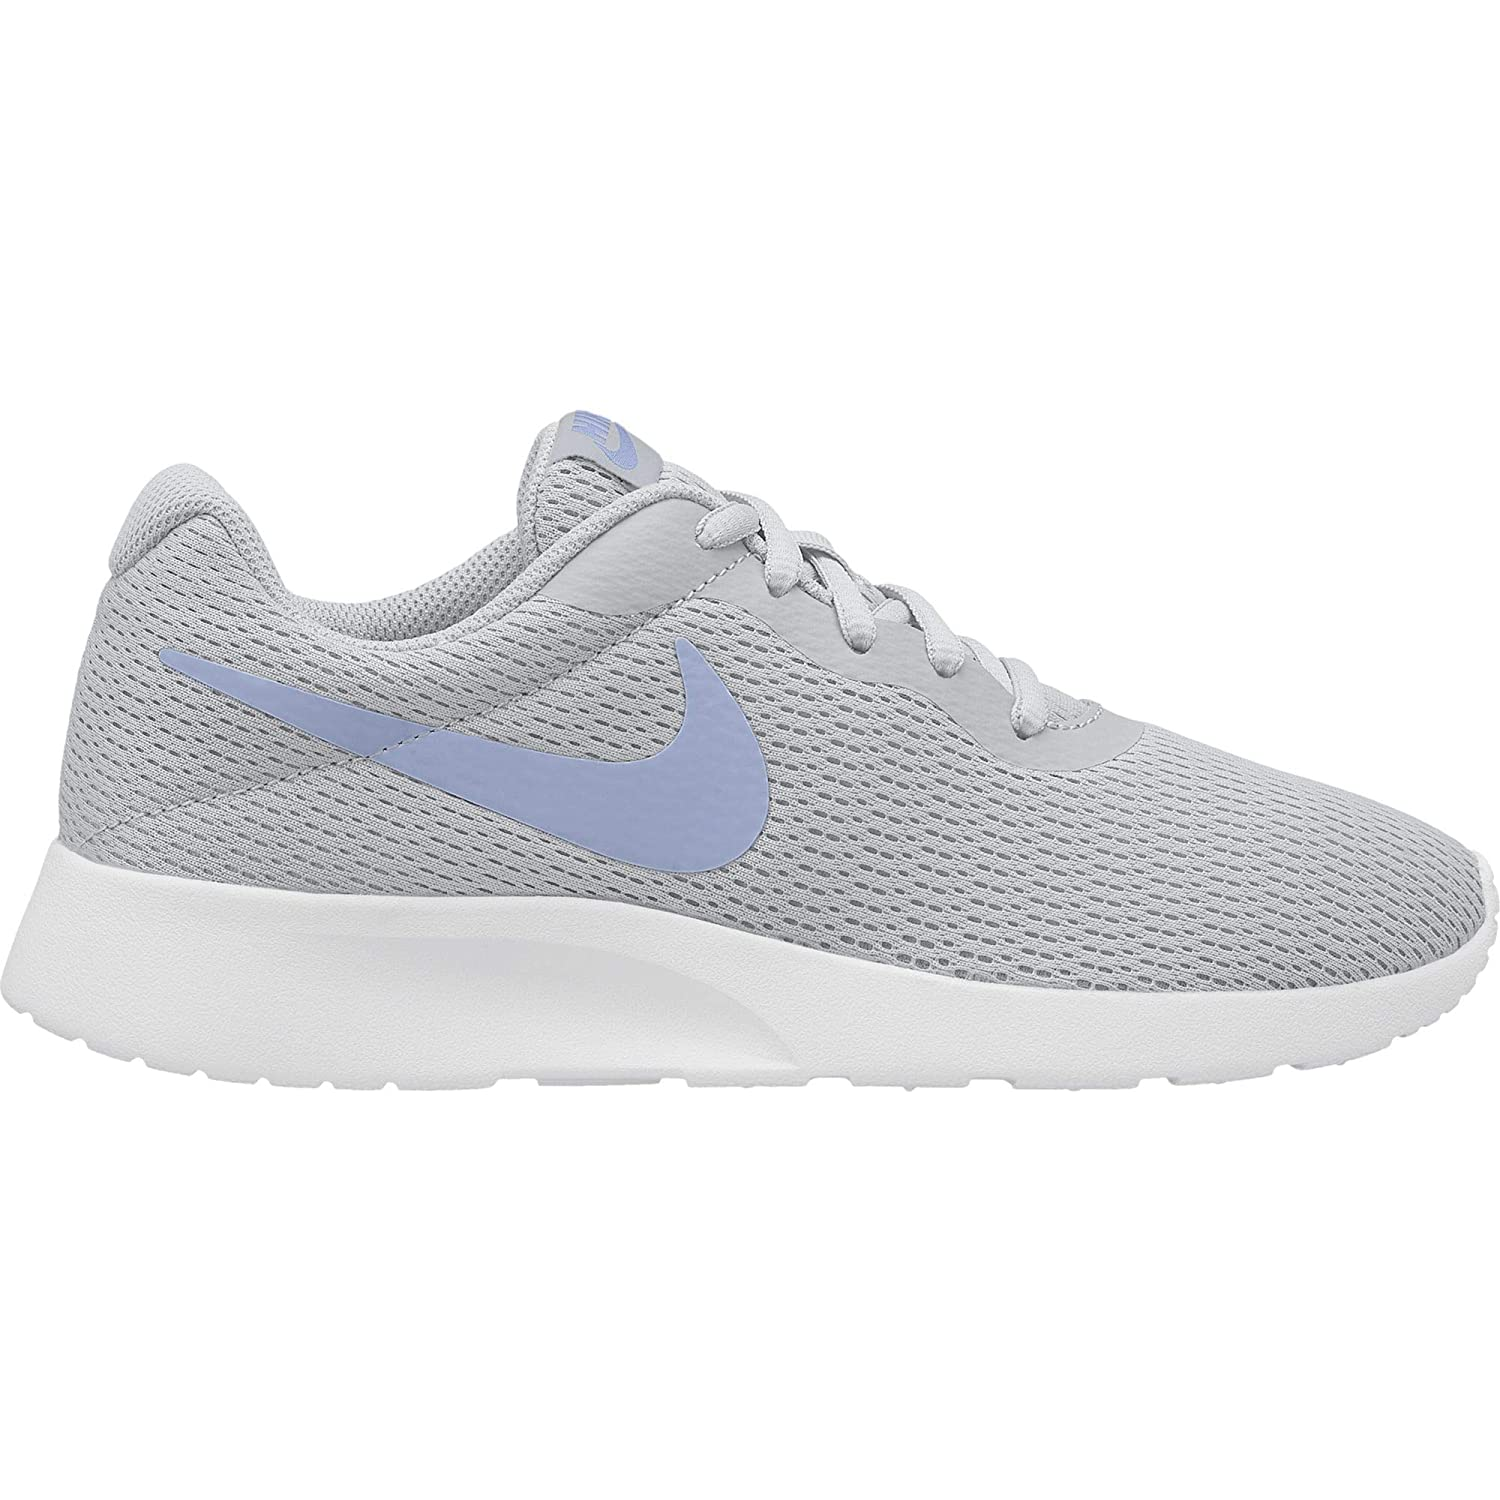 Gentlemen/Ladies Nike Men's Men's Men's Air Monarch IV Athletic Shoe, White/White - Cool Grey - Anthracite Queensland Known for its good quality wonderful BB7104 290094